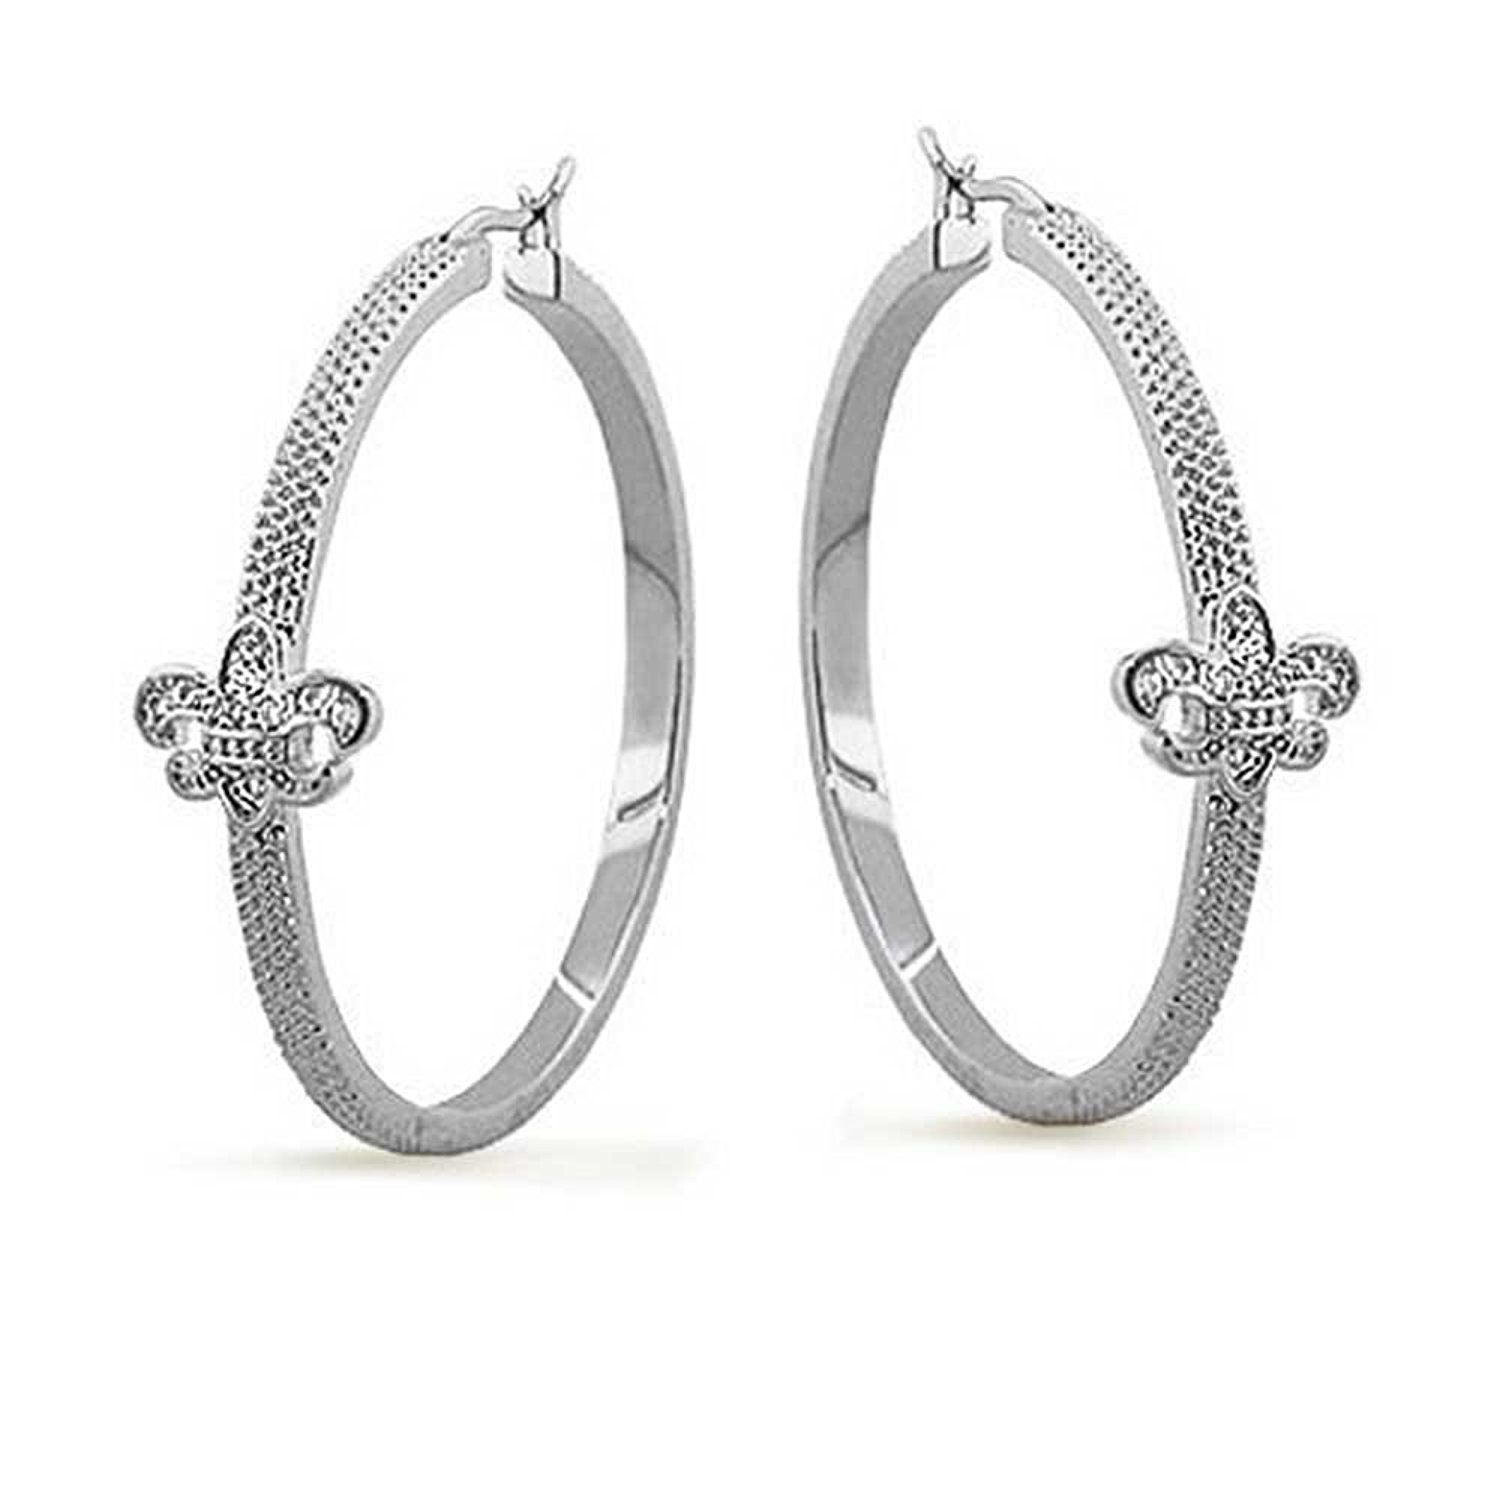 Bling Jewelry CZ Fleur De Lis Hoop Earrings Rhodium Plated Brass